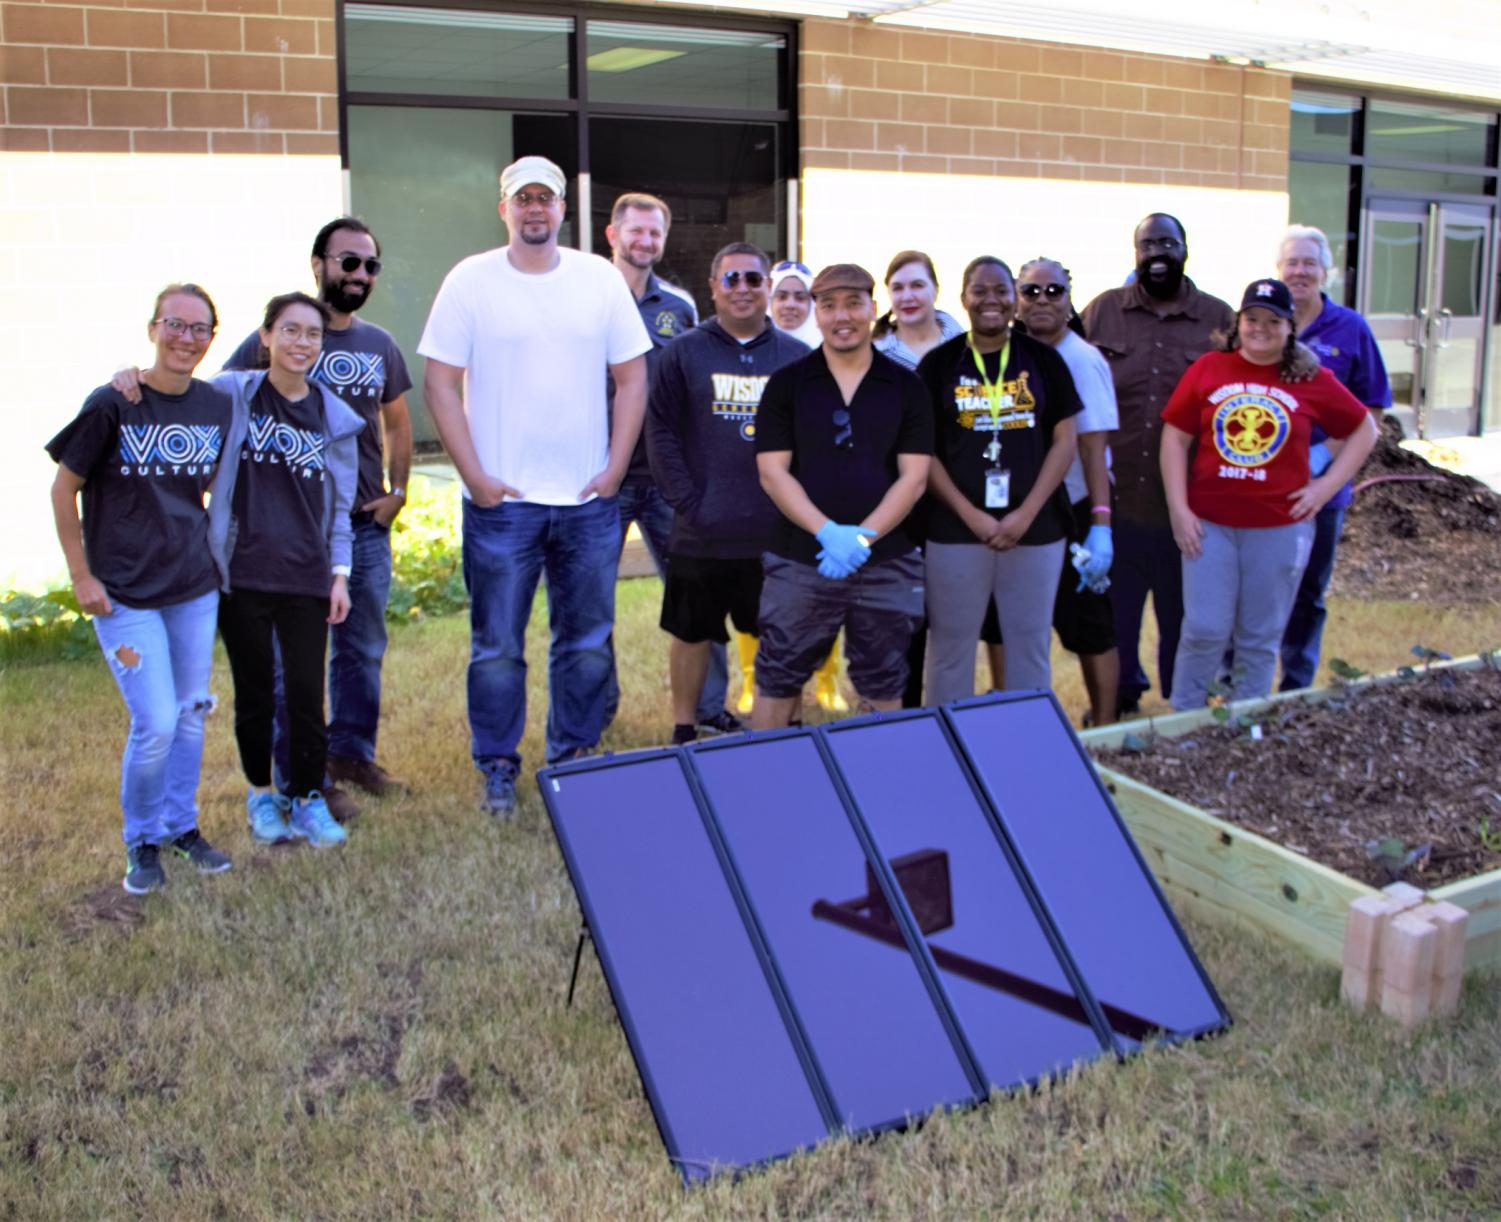 A group of volunteers that helped install a solar-powered garden at Wisdom HS; Saturday, December 1, 2018.